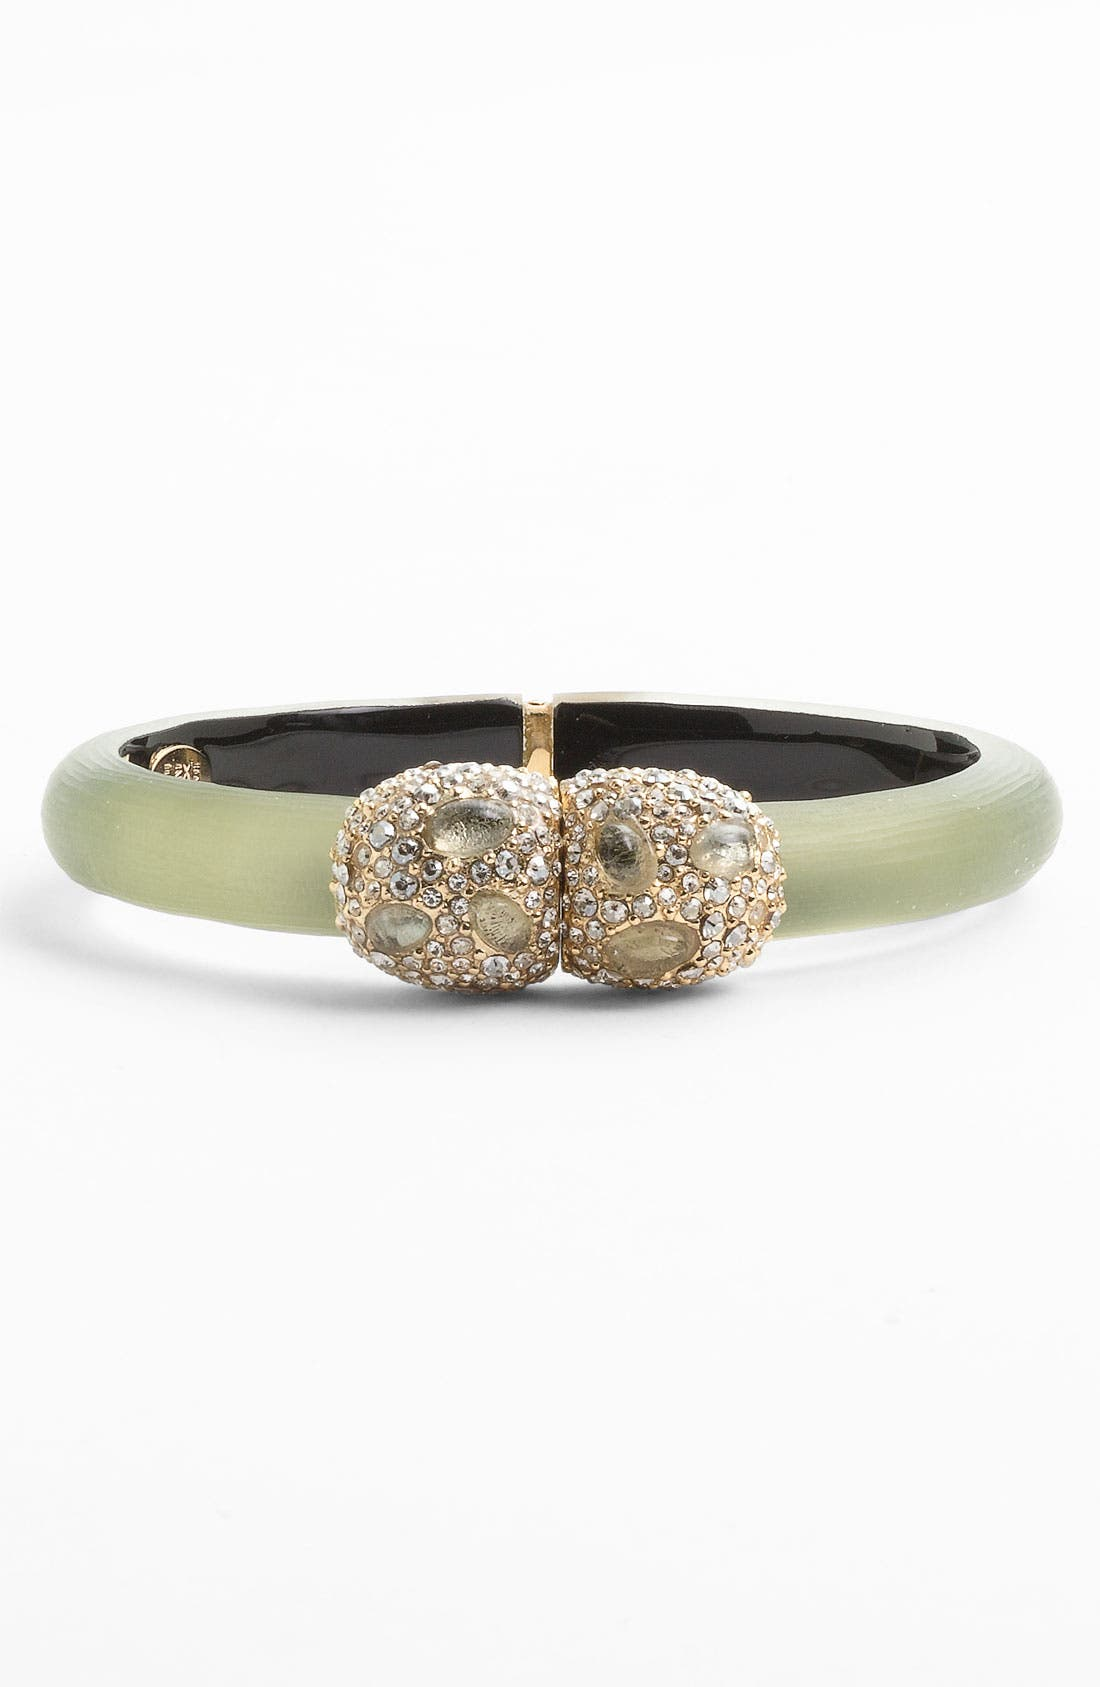 Alternate Image 1 Selected - Alexis Bittar 'Modular' Small Pebble Clasp Hinged Bracelet